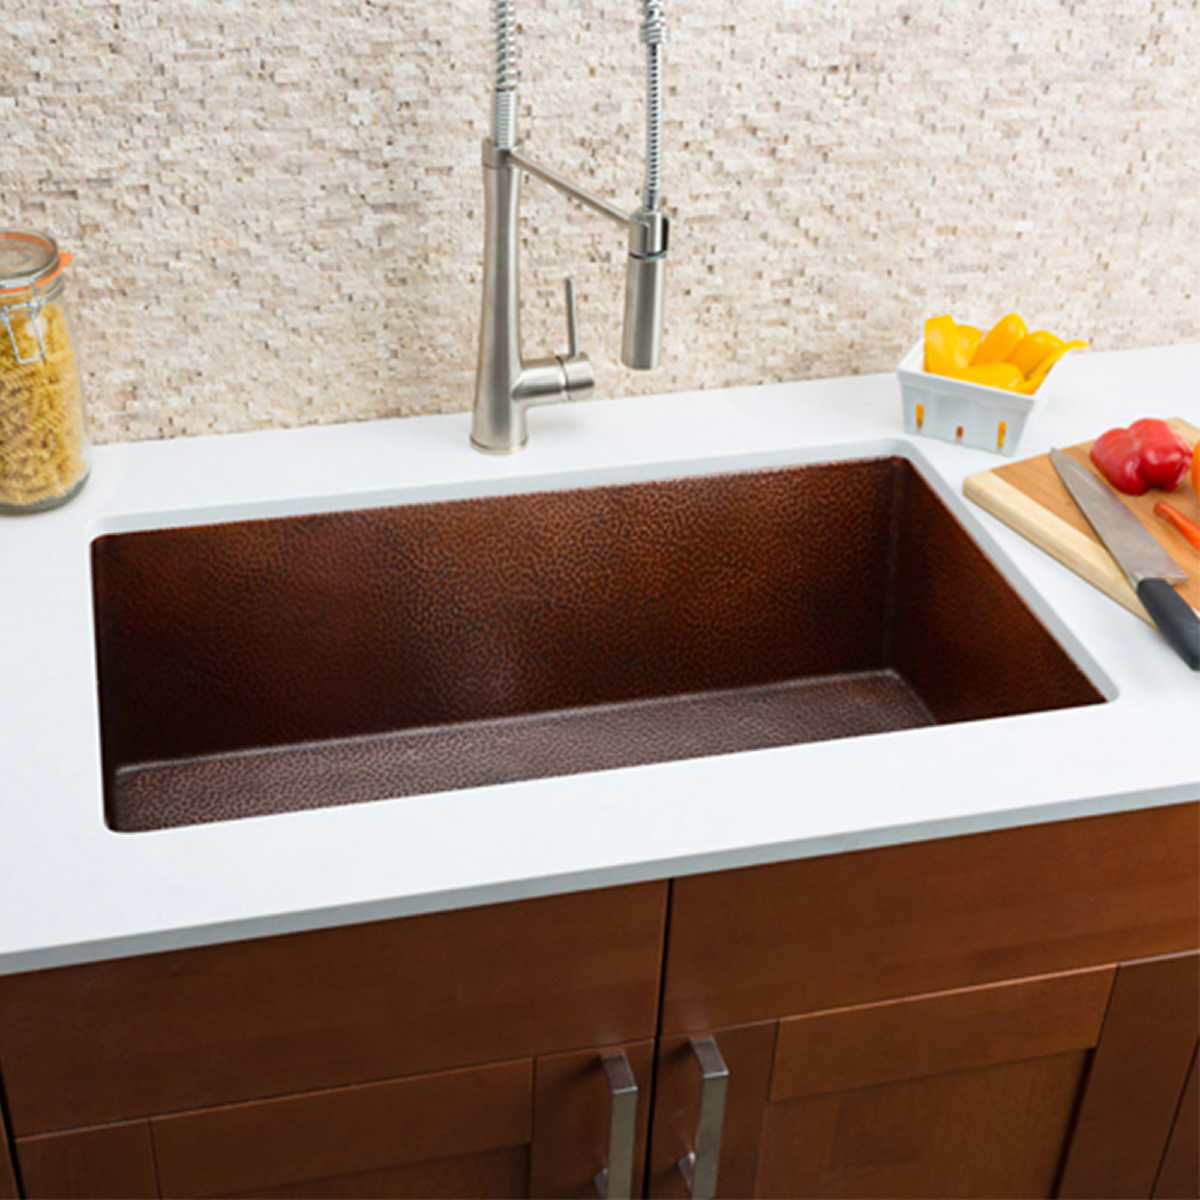 hahn copper large undermount single bowl sink - Kitchen Sinks Pictures